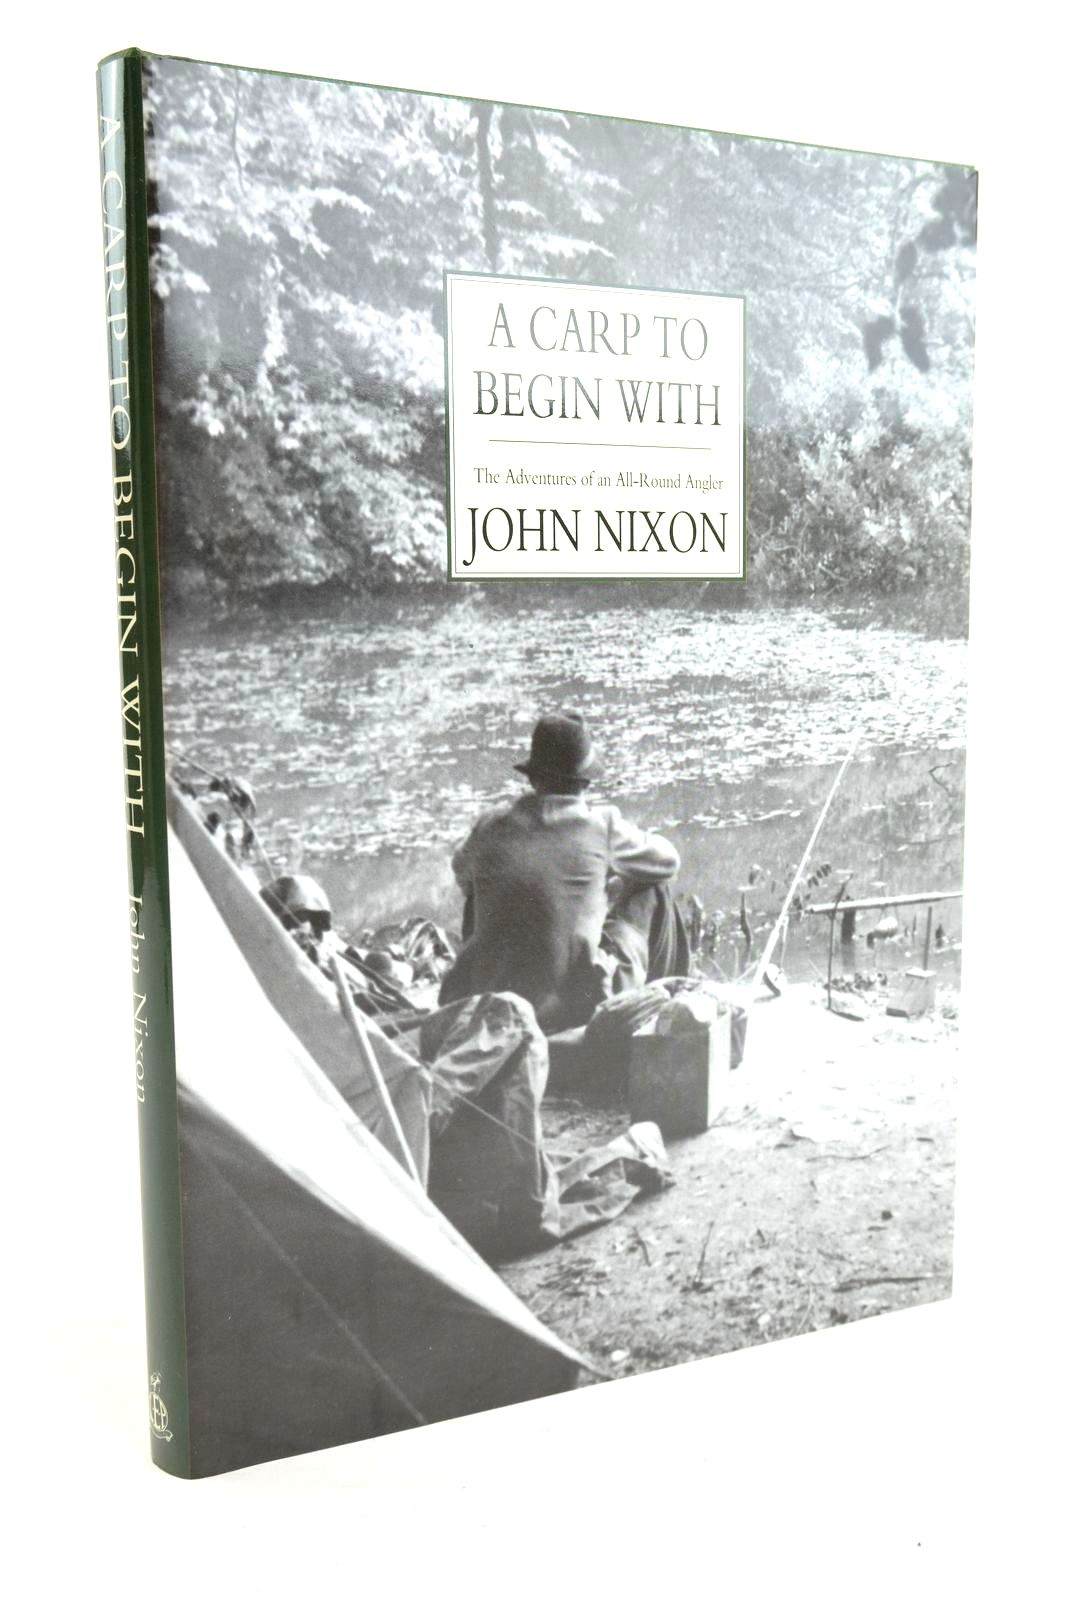 Photo of A CARP TO BEGIN WITH written by Nixon, John illustrated by O'Reilly, Tom published by The Little Egret Press (STOCK CODE: 1320067)  for sale by Stella & Rose's Books